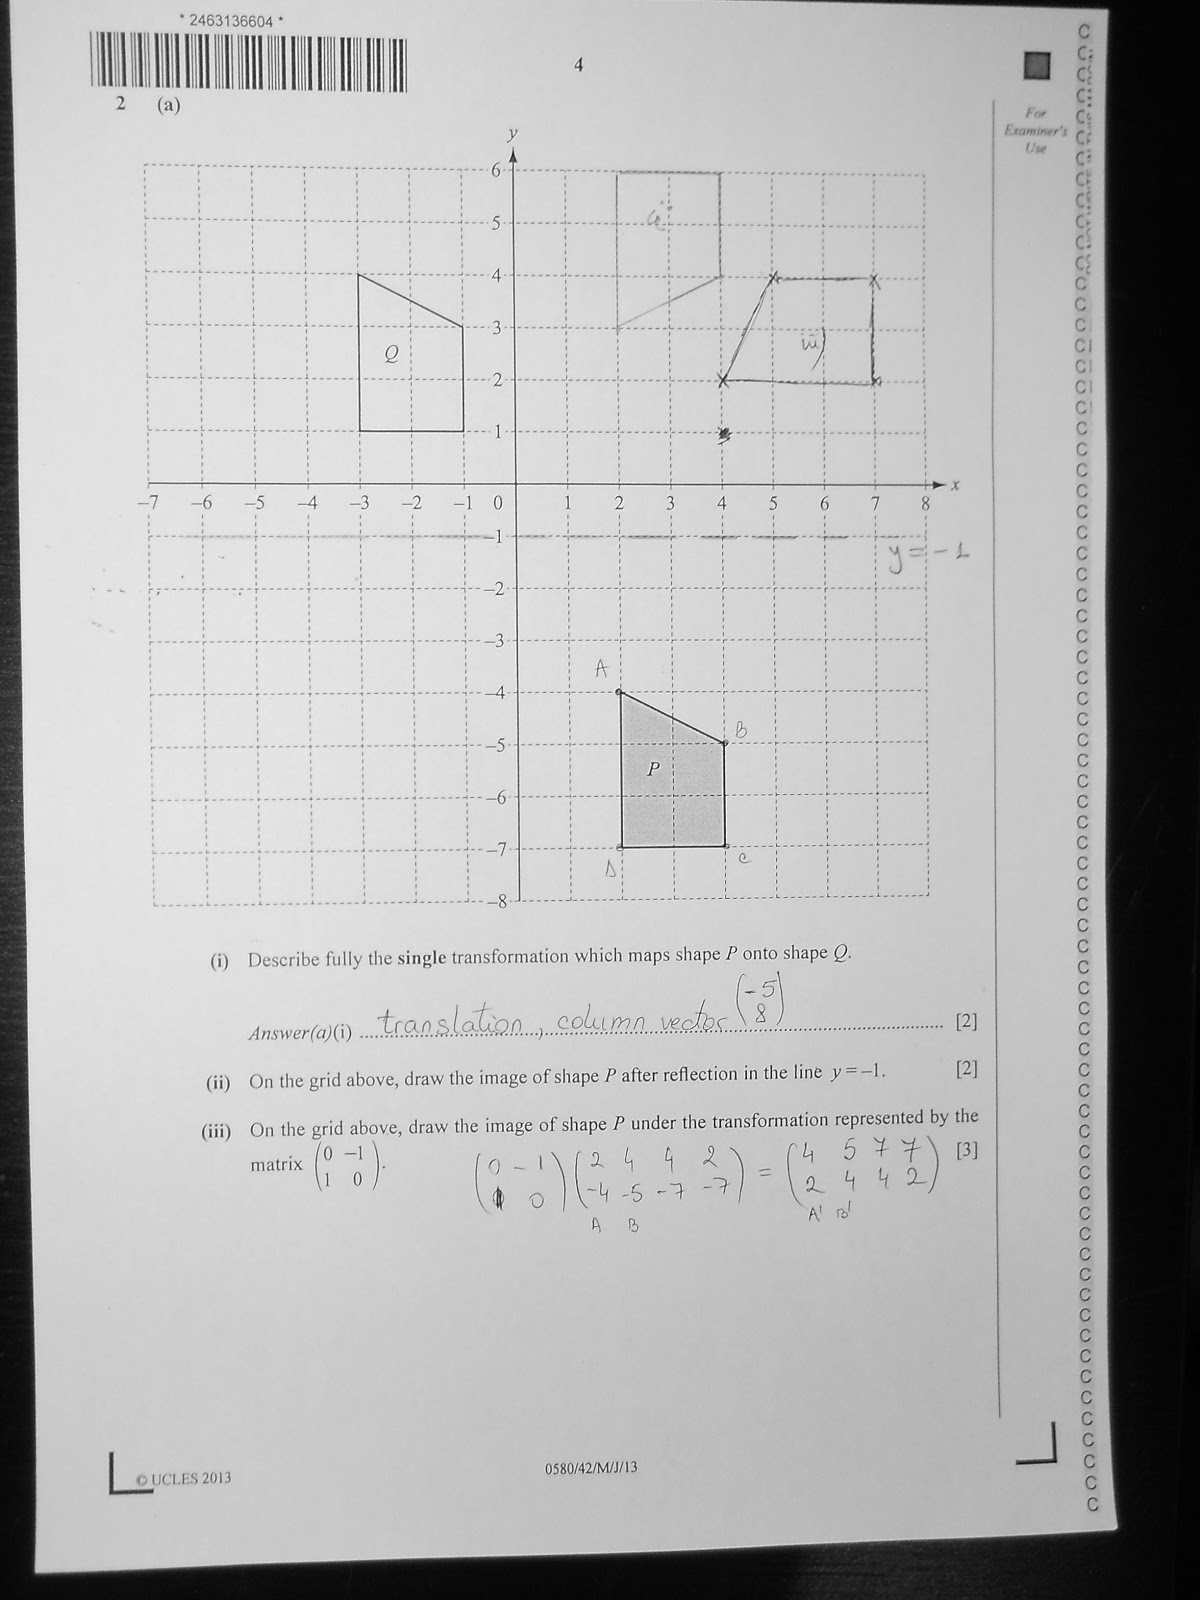 CIE IGCSE 0580 Mathematics Paper 4 (Extended), May/June 2013